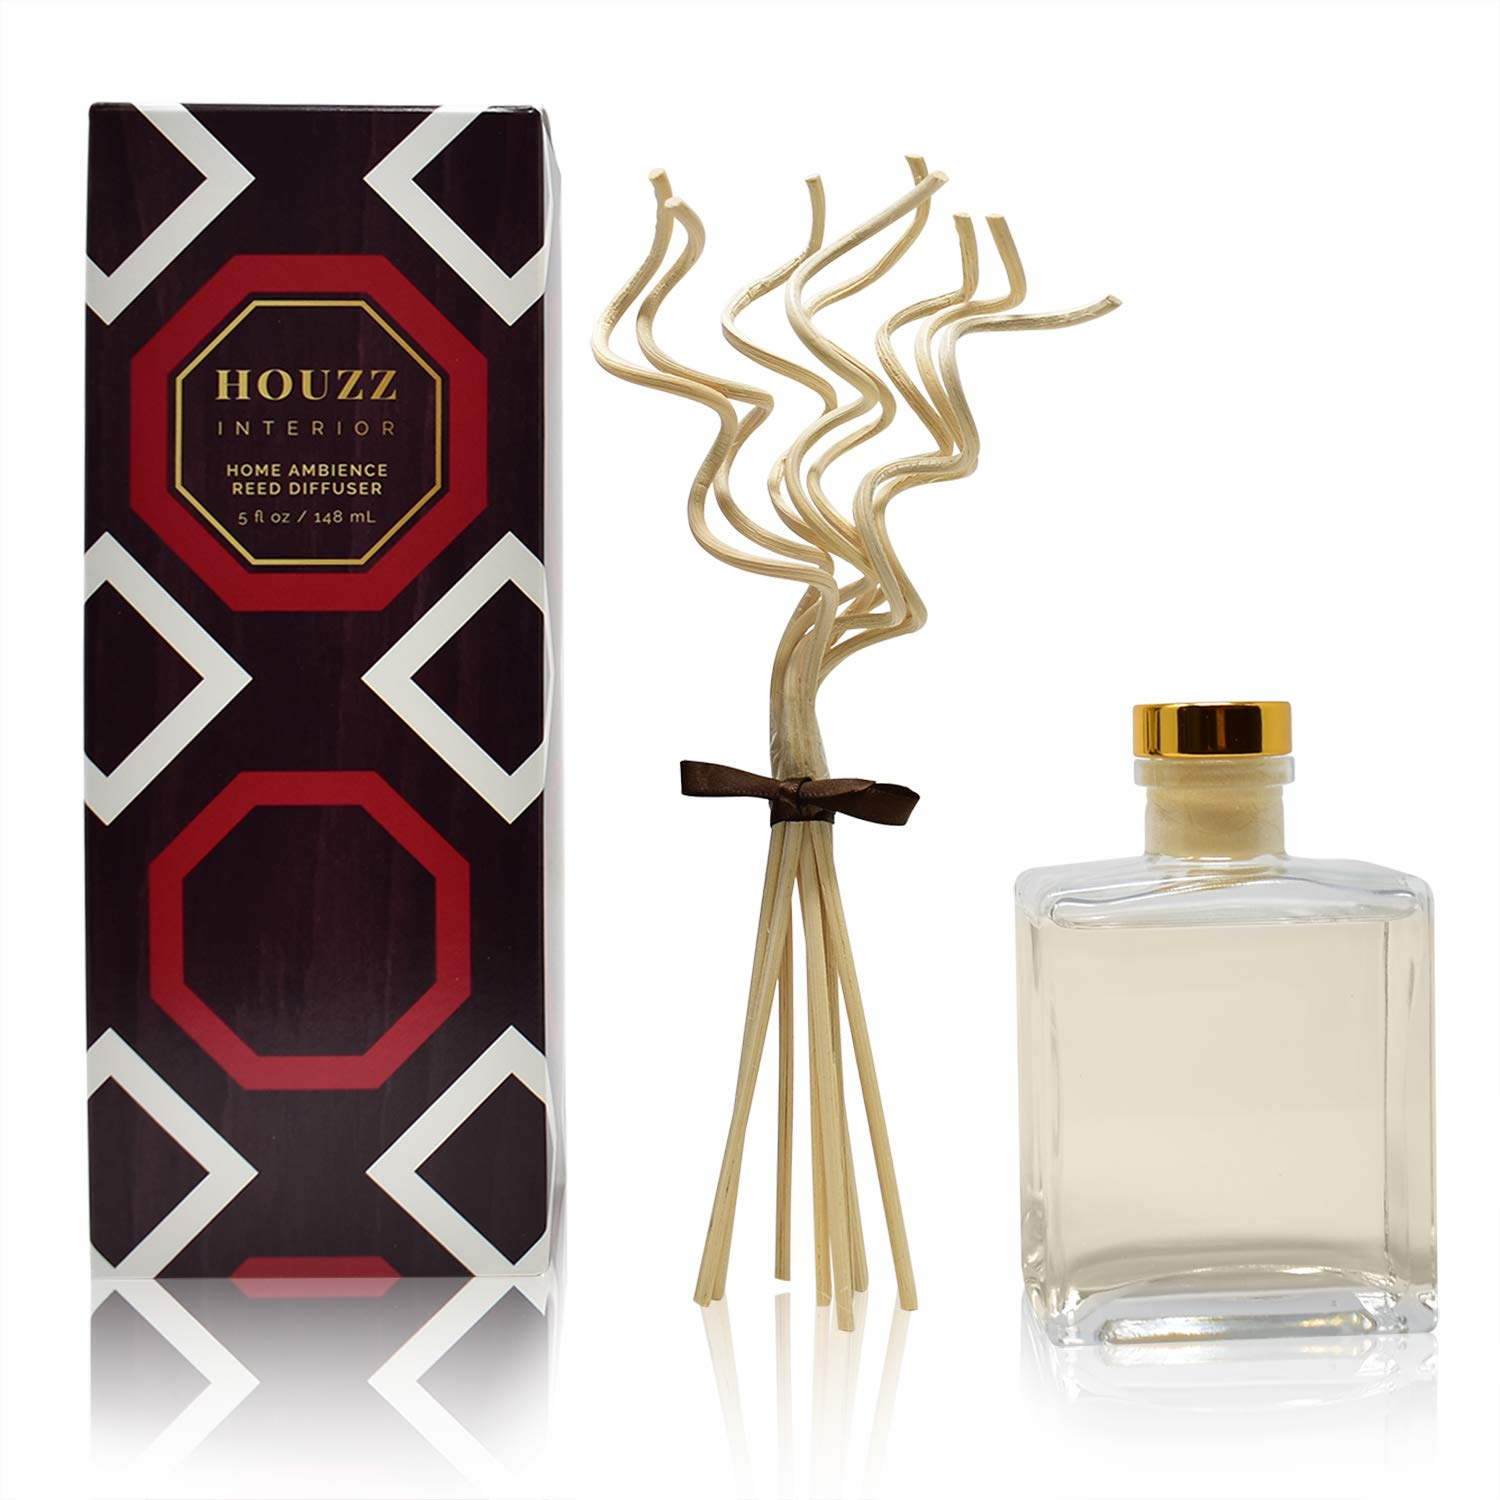 HOUZZ Interior Mango Mandarin Scented Reed Diffuser Oil Set with Decorative Curly Bamboo Reed Sticks - All Natural Citrus Essential Oils - No Sulfates or Parabens - Made in The USA by HOUZZ Interior (Image #3)